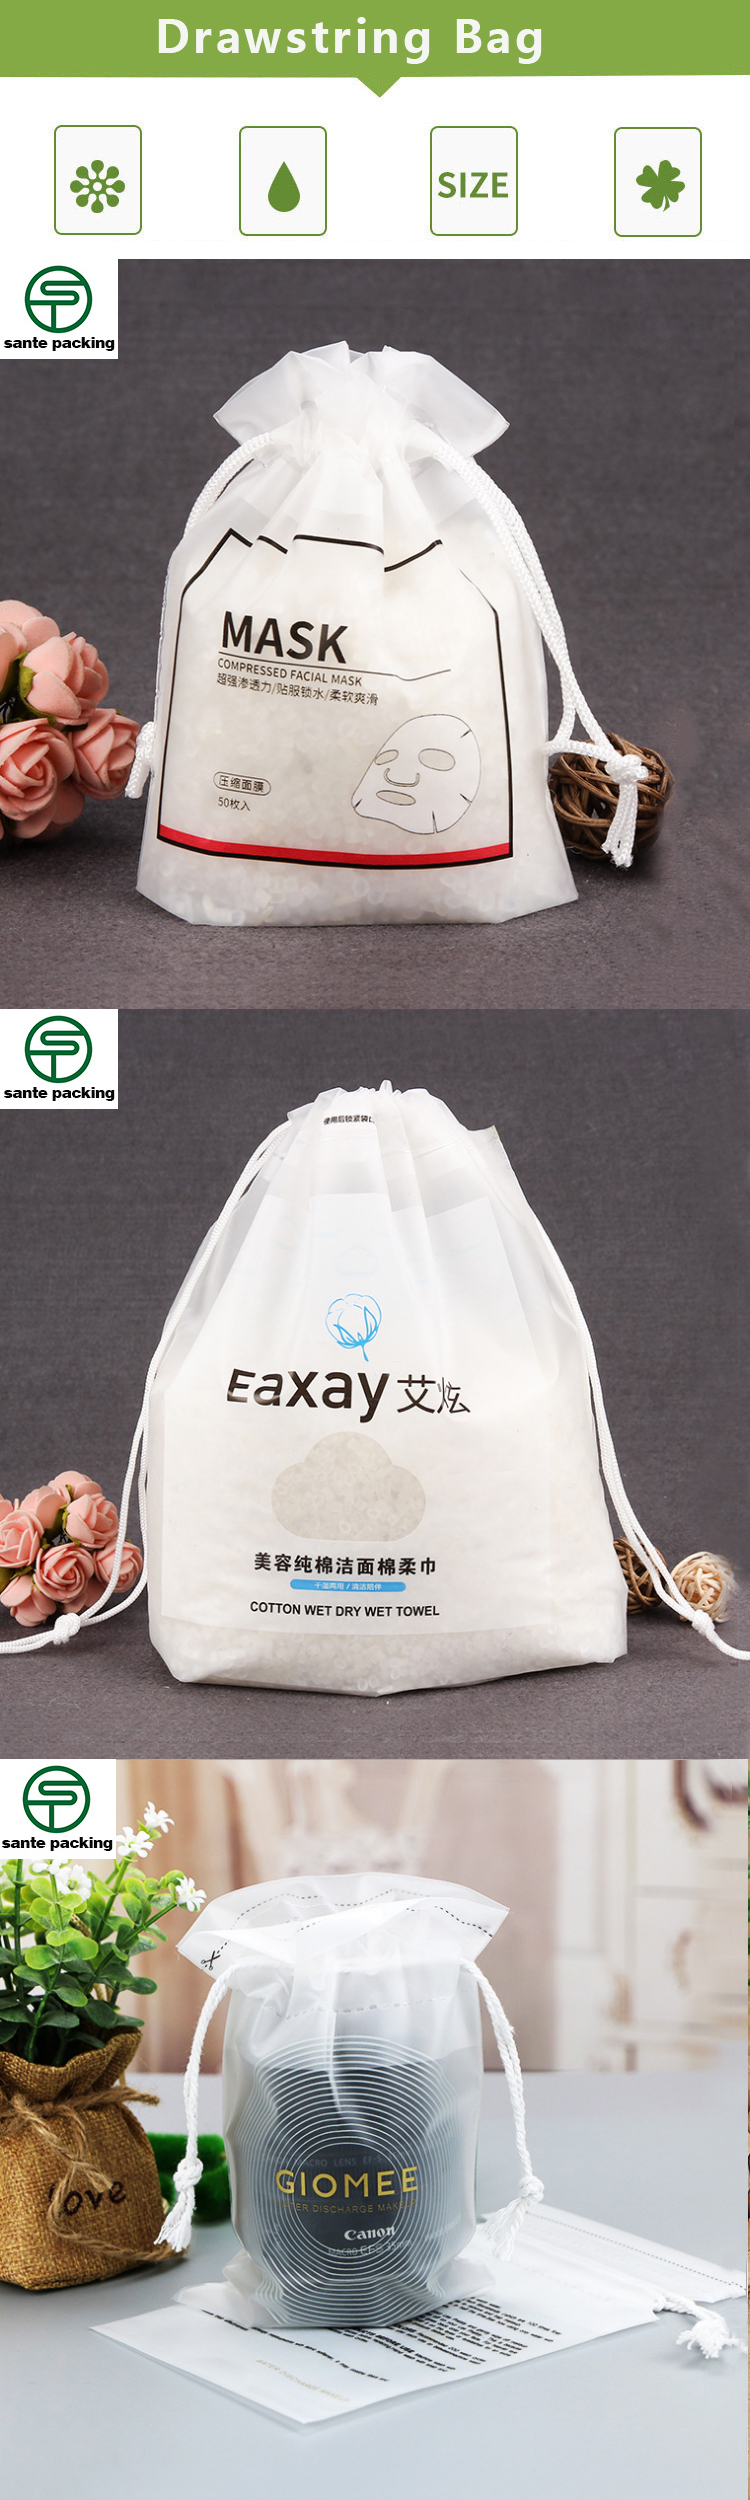 custom print Japan biodegradable compressed drawstring plastic bags with own logo